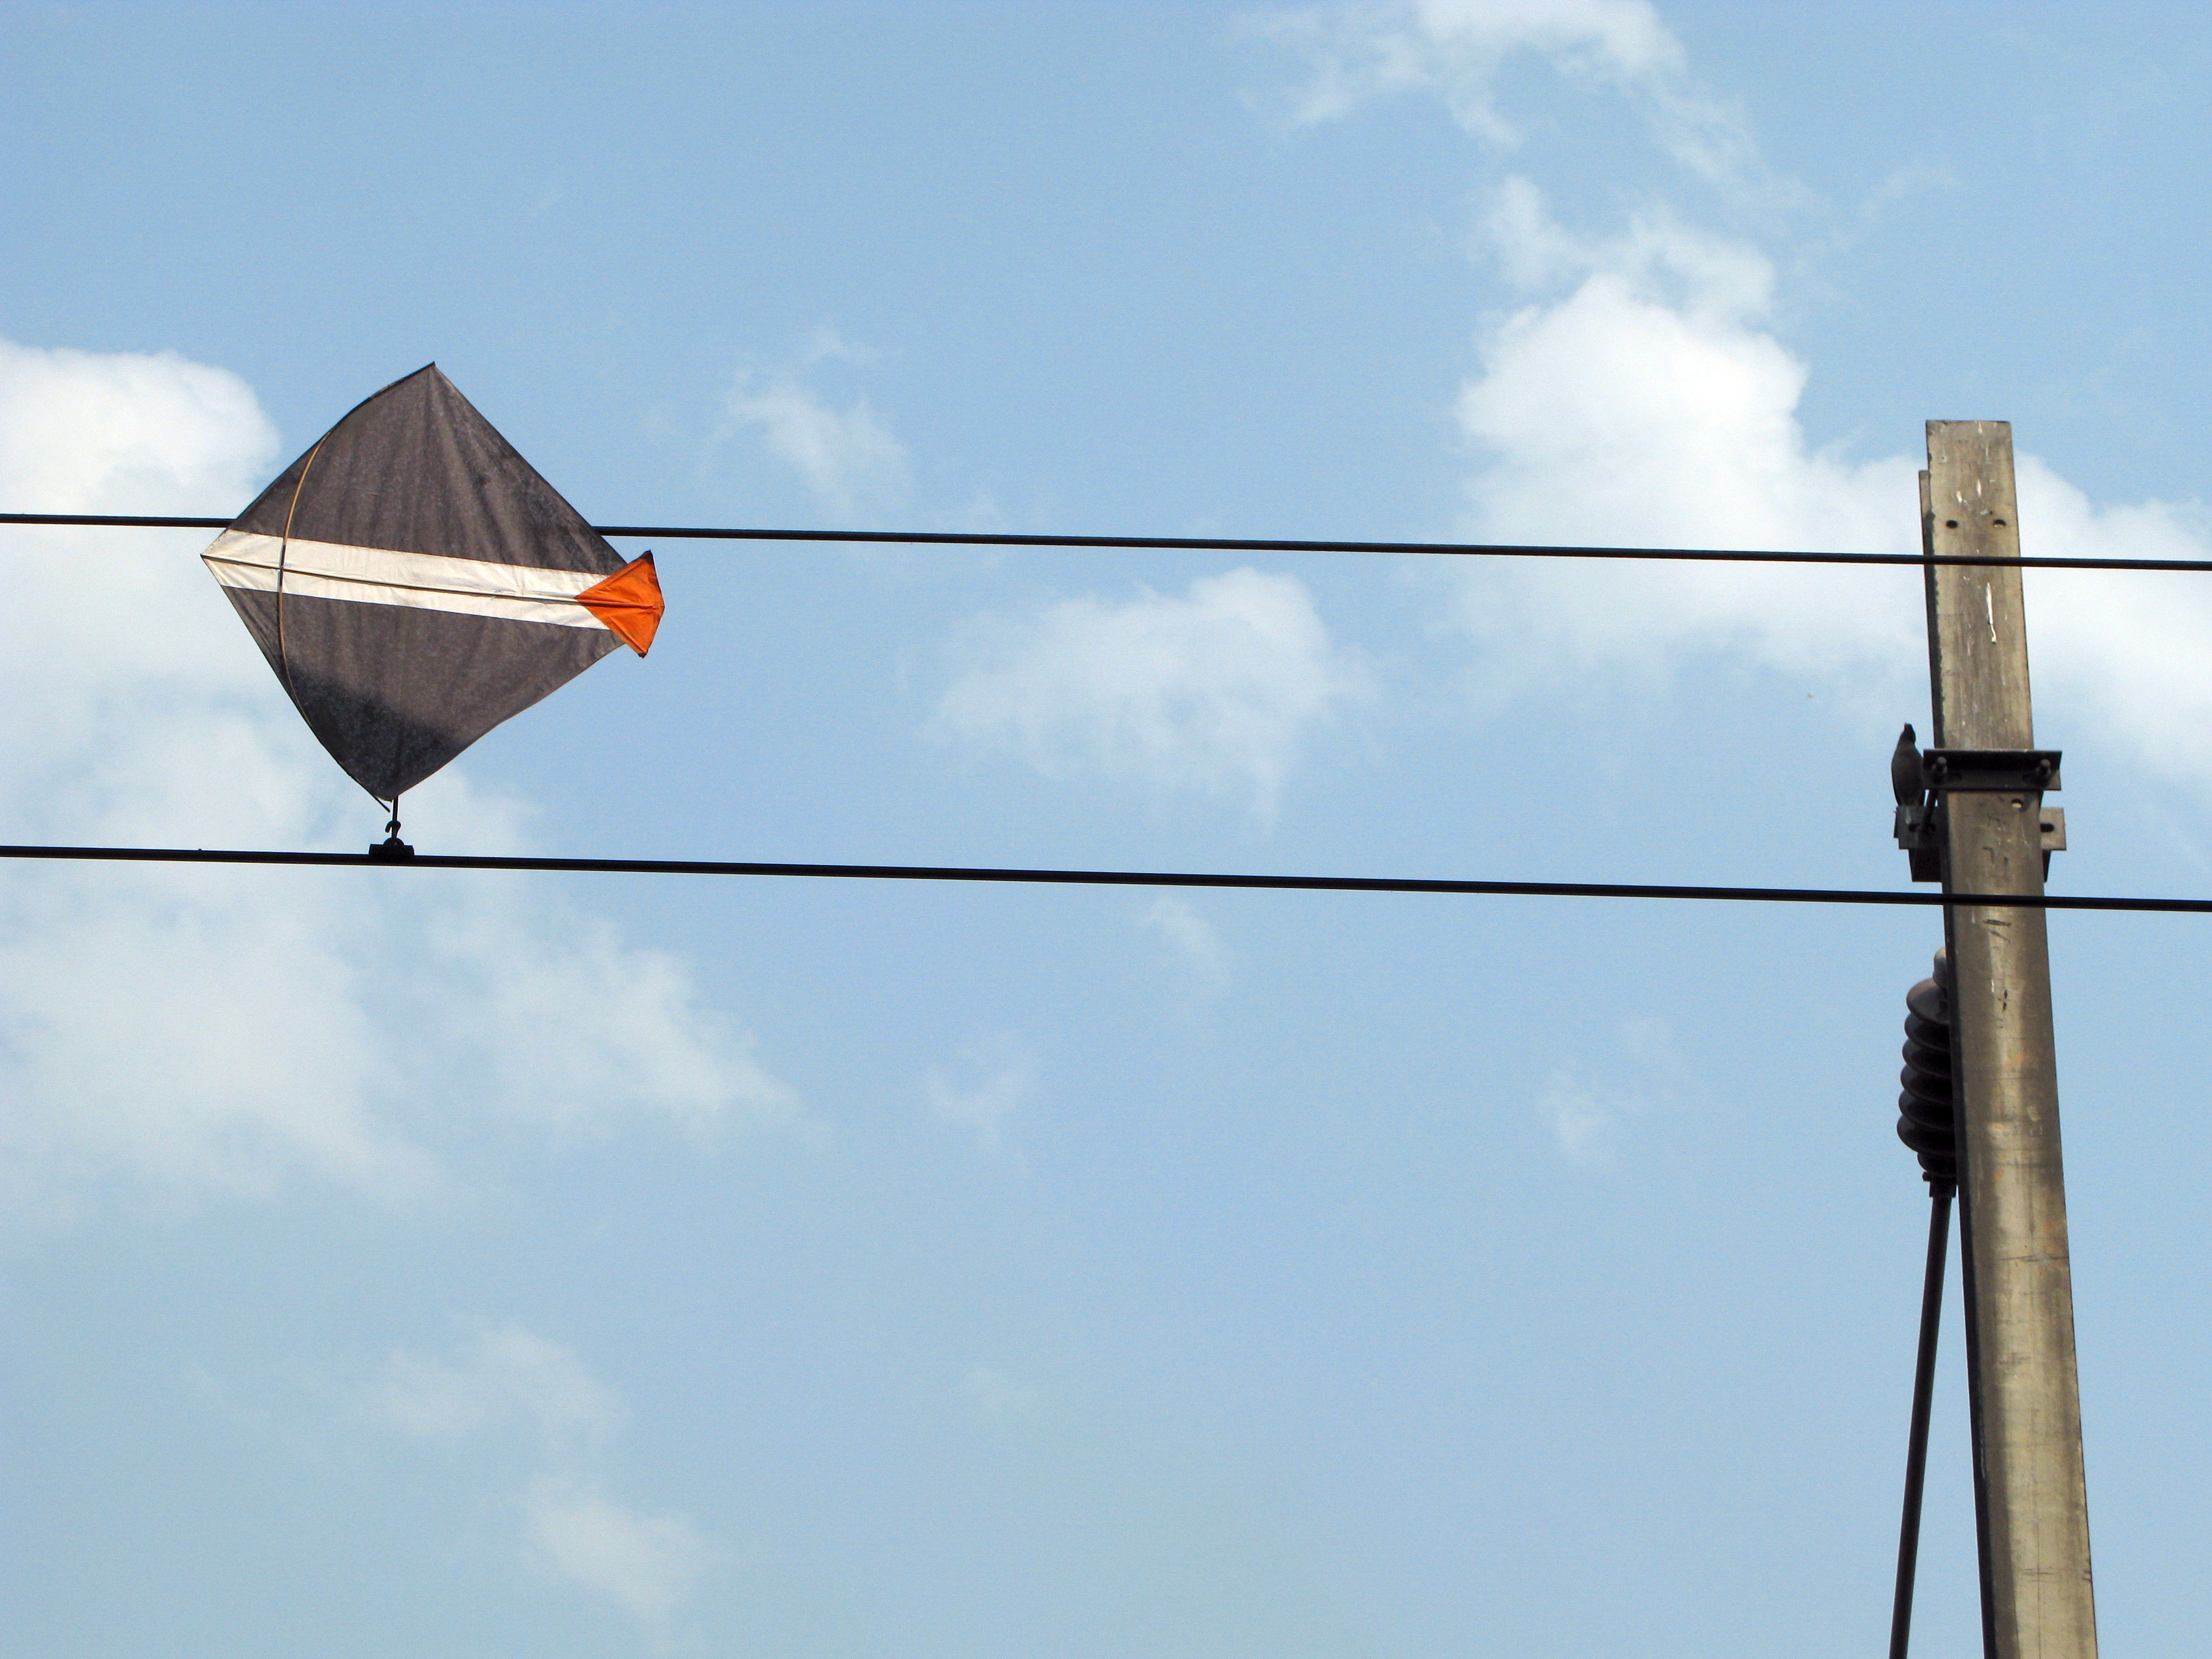 Stay safe outdoors, too! Never fly kites near overhead wires and use ...